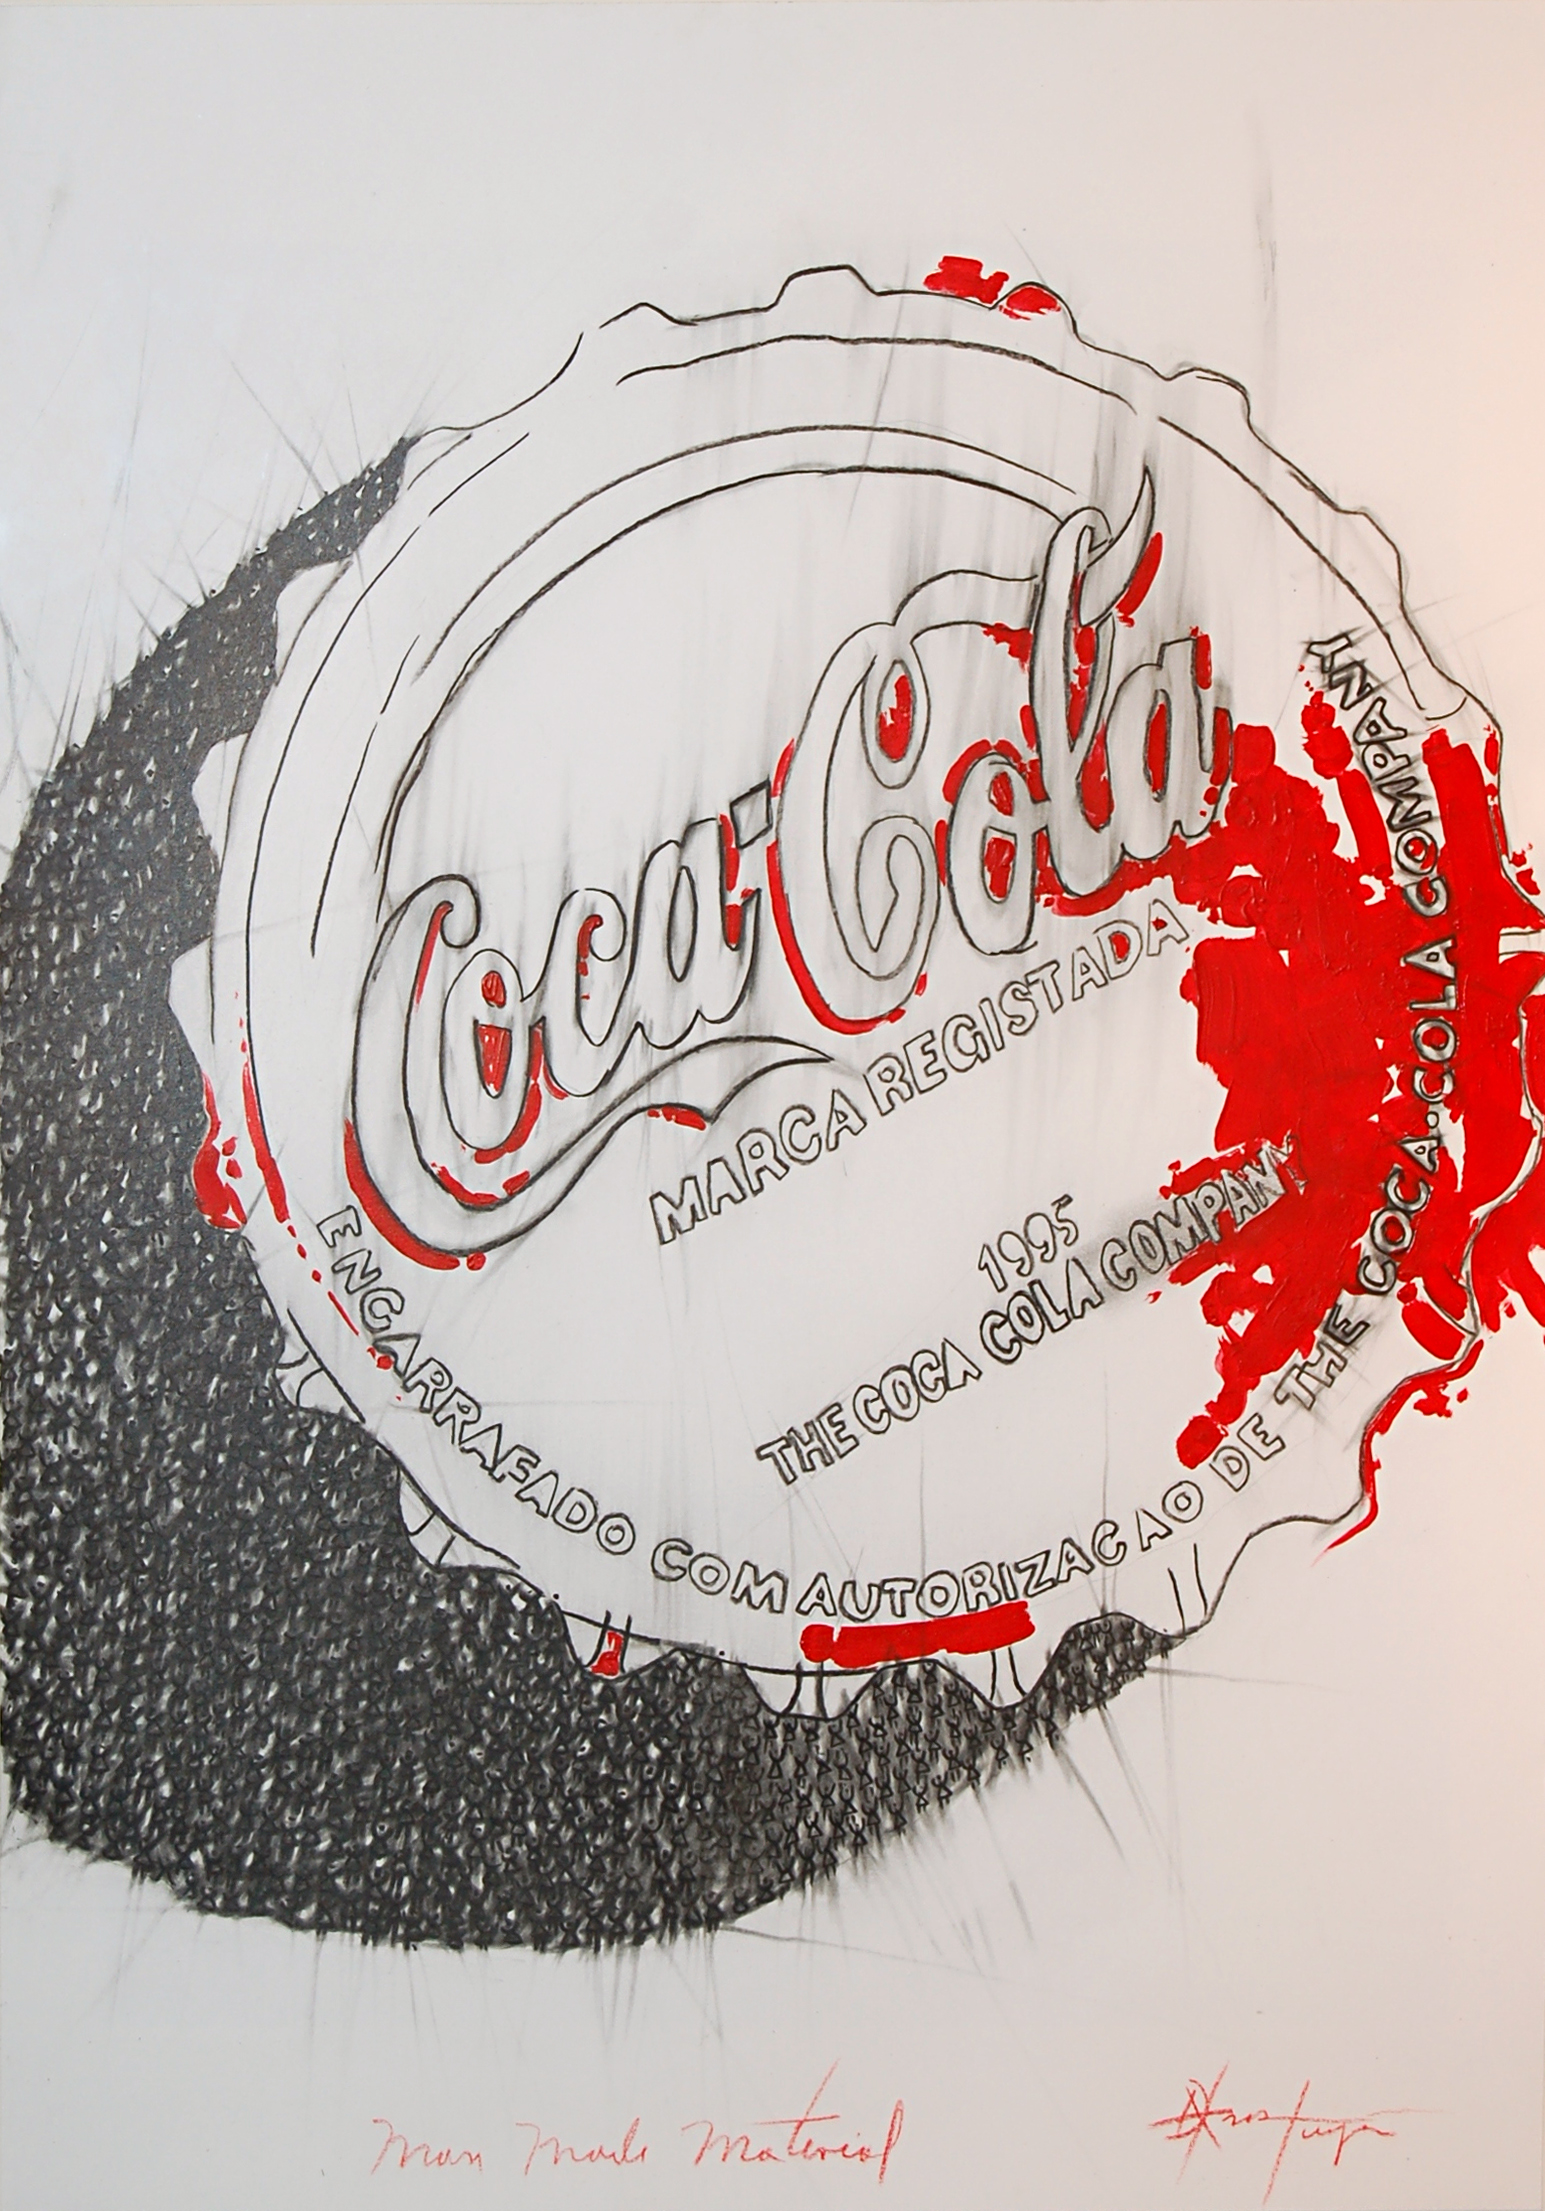 Dalvis Tuya, Man Made Material Series #1 (Coca Cola), Charcoal and Watercolour on Paper, 2014, 45 x 61 cm